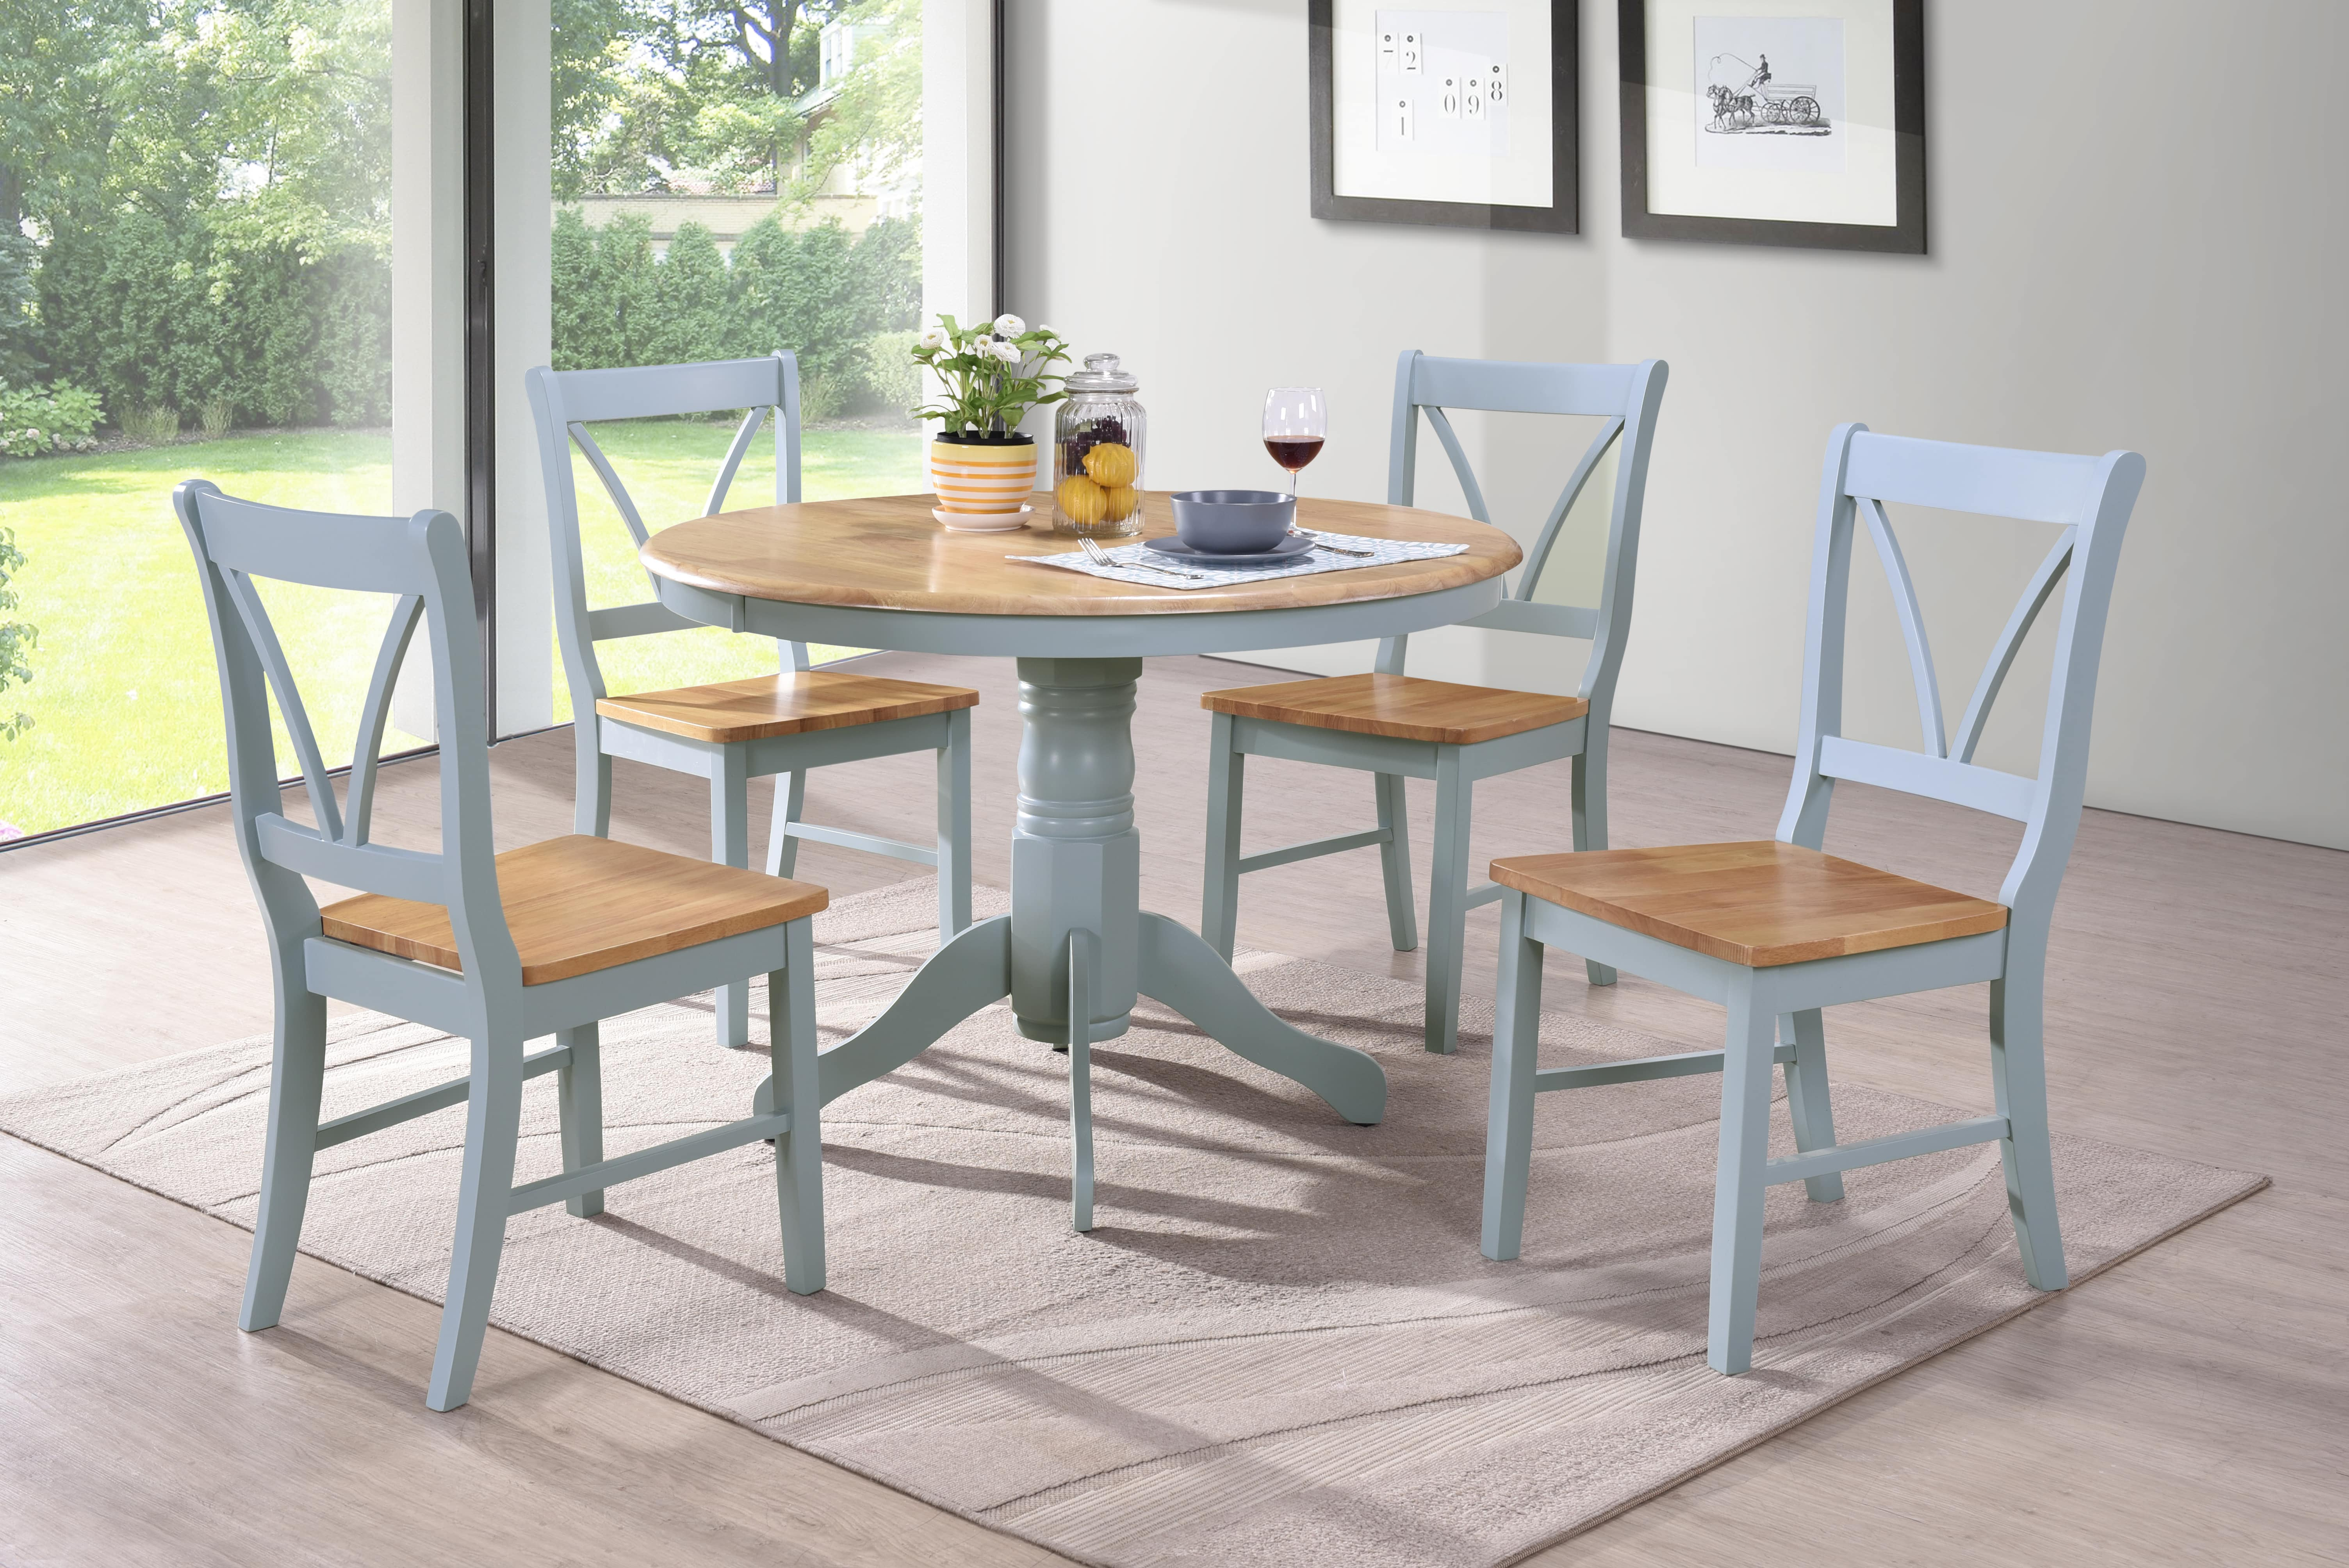 Dining Room Chairs Set Of 4 Marshell Dining Table And 4 Chair Set